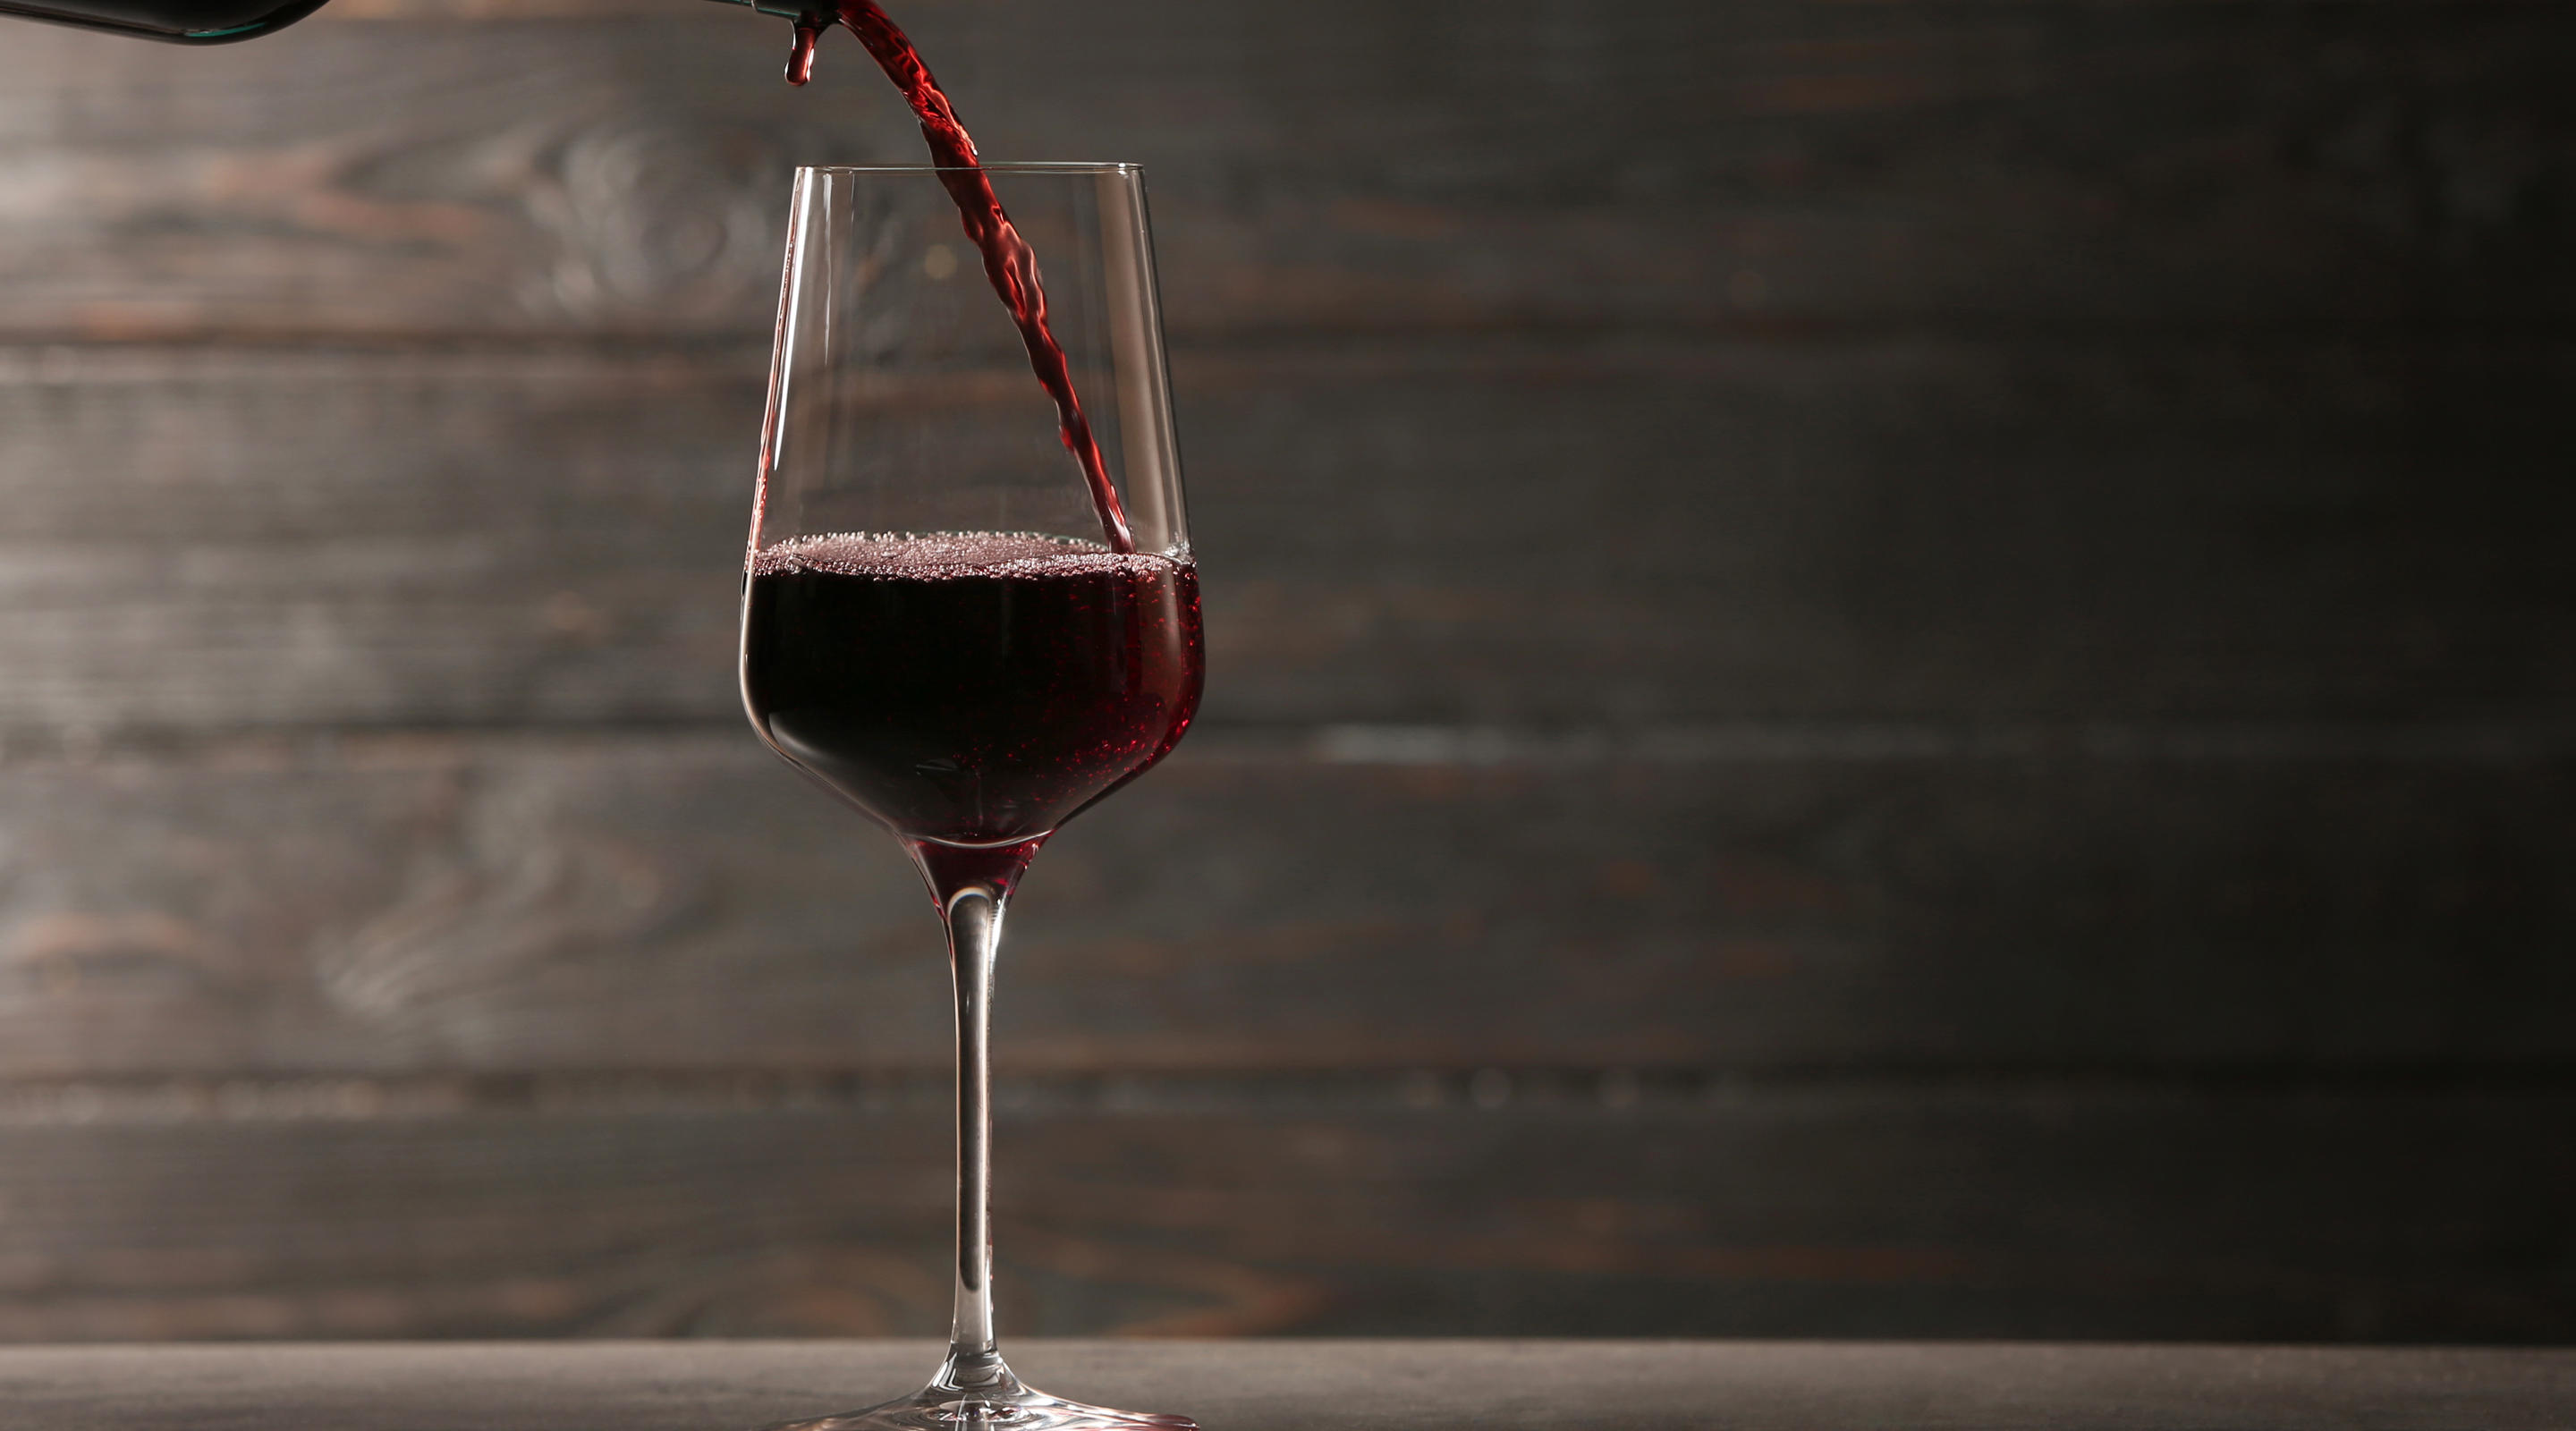 A glass of red wine pouring.